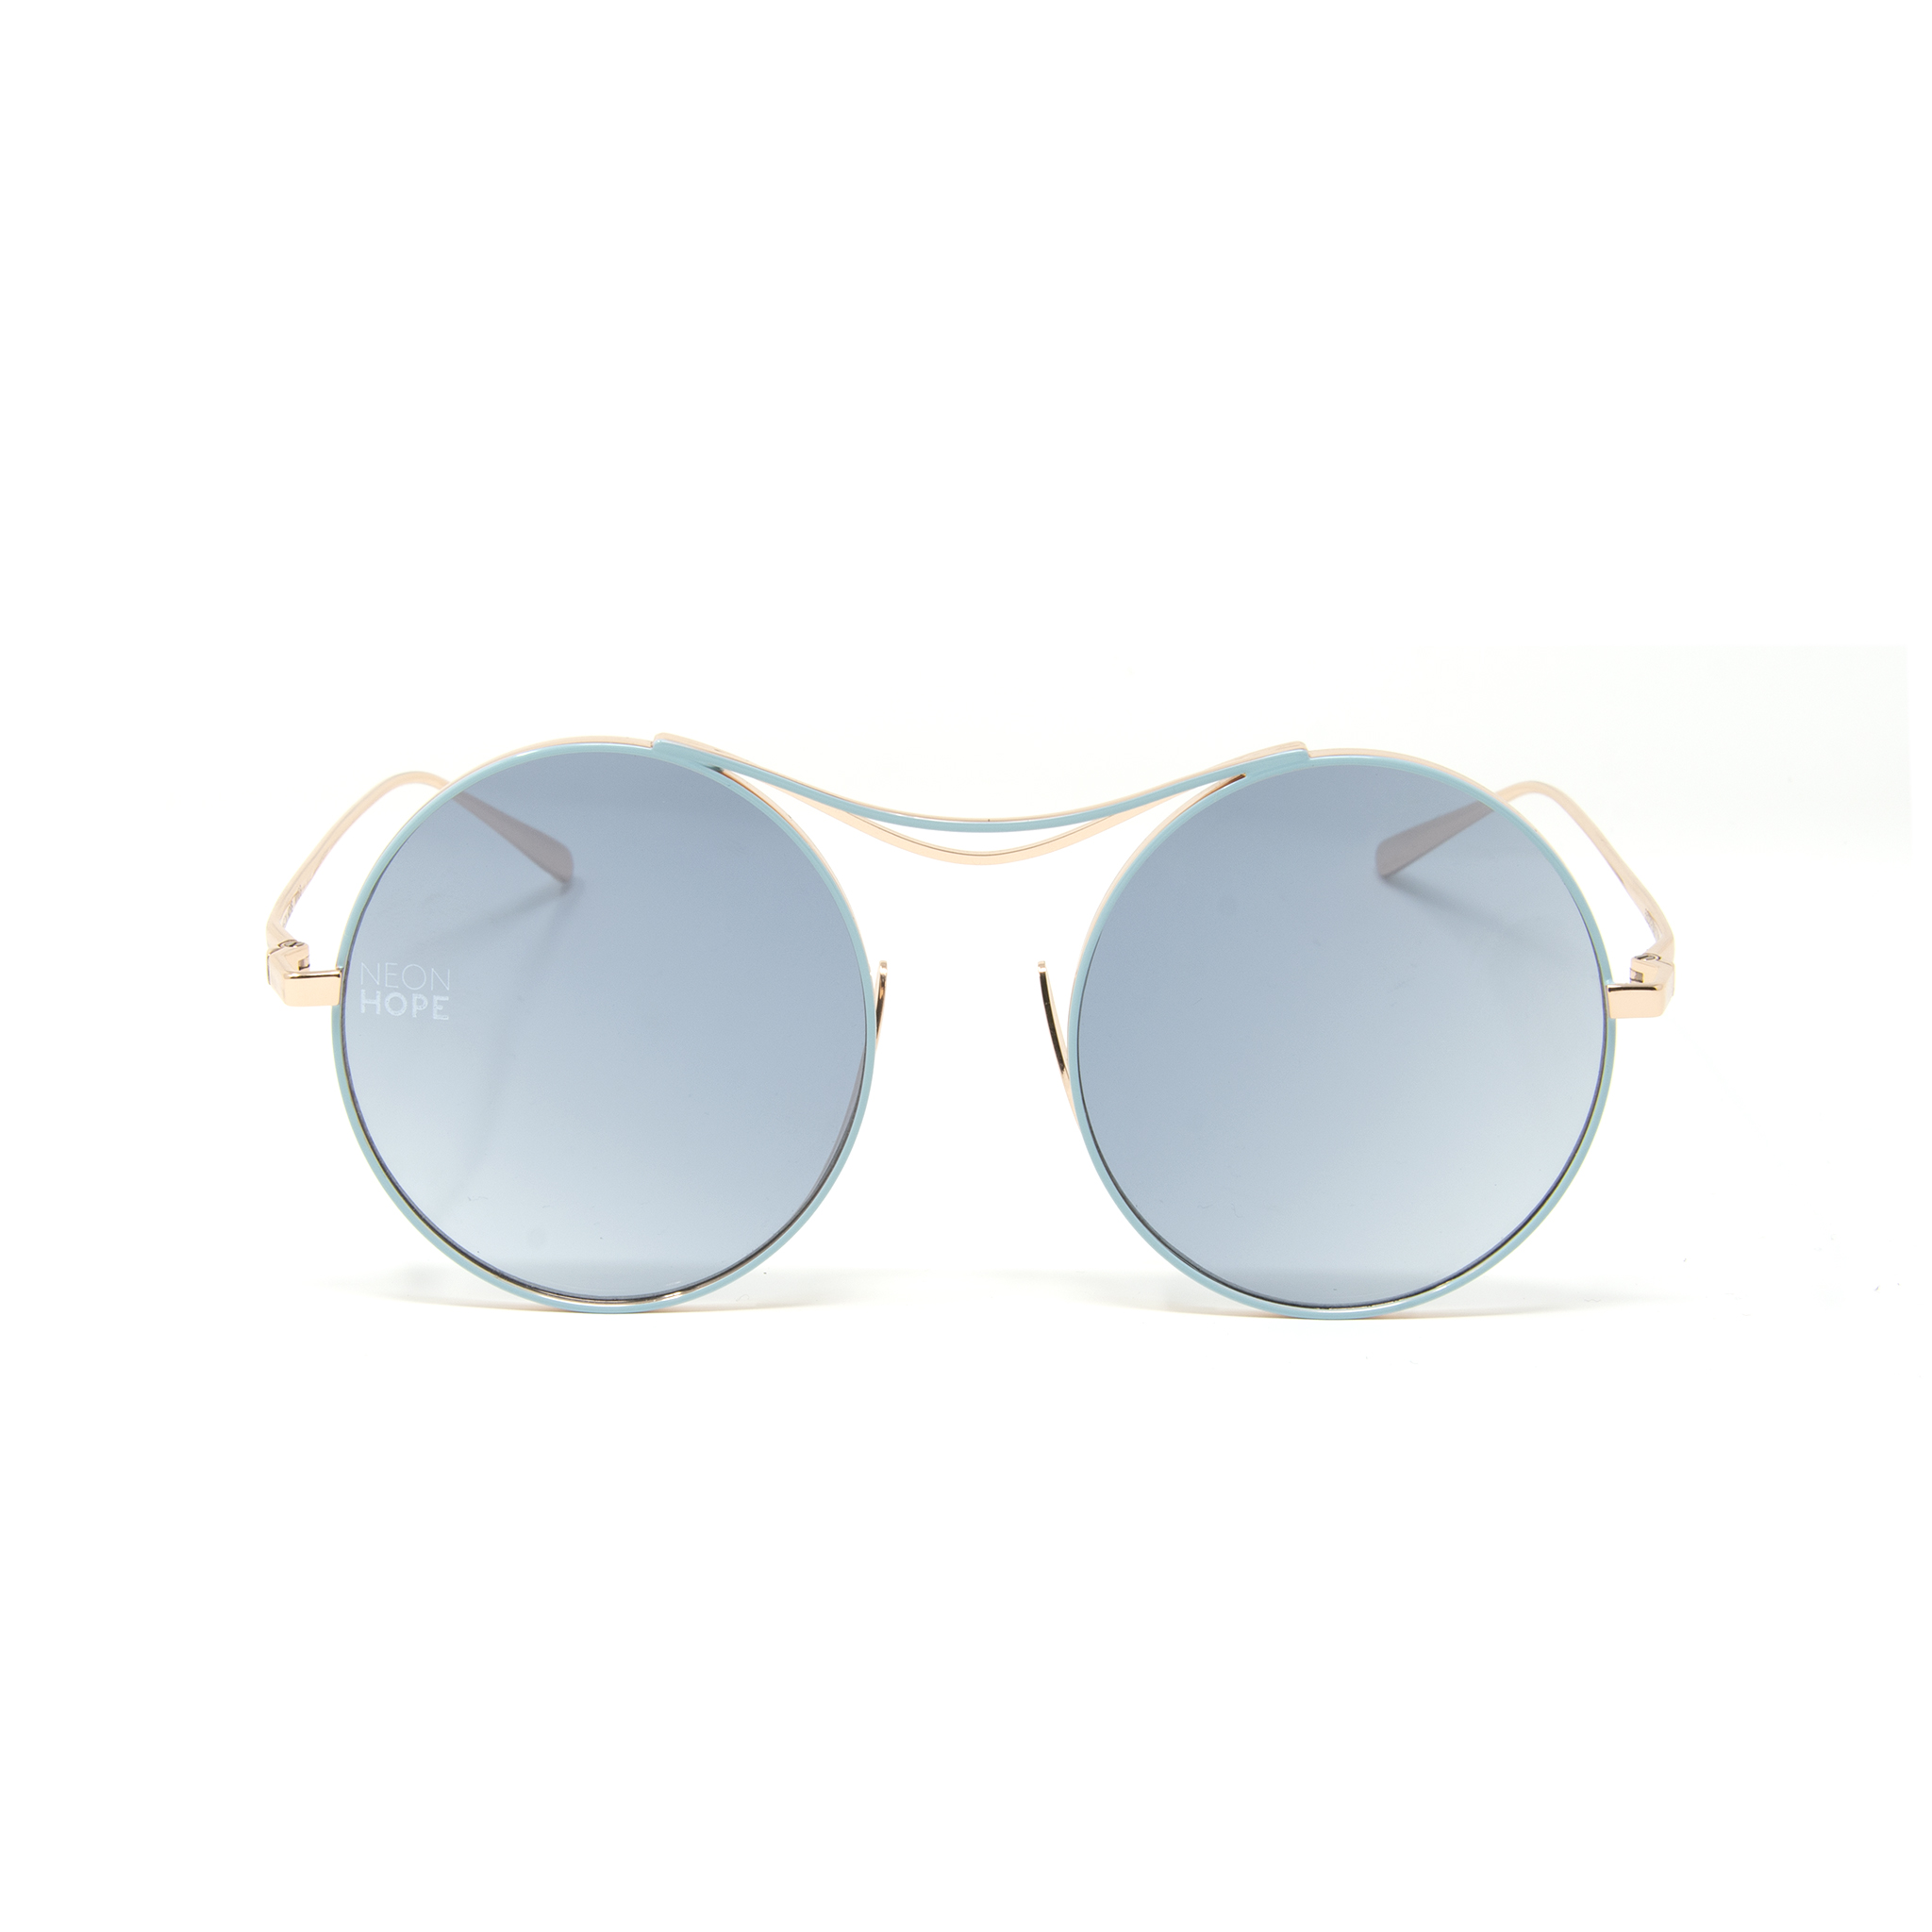 Sulis - Powder Blue / Rose Gold (limited edition) by Neon Hope on curated-crowd.com